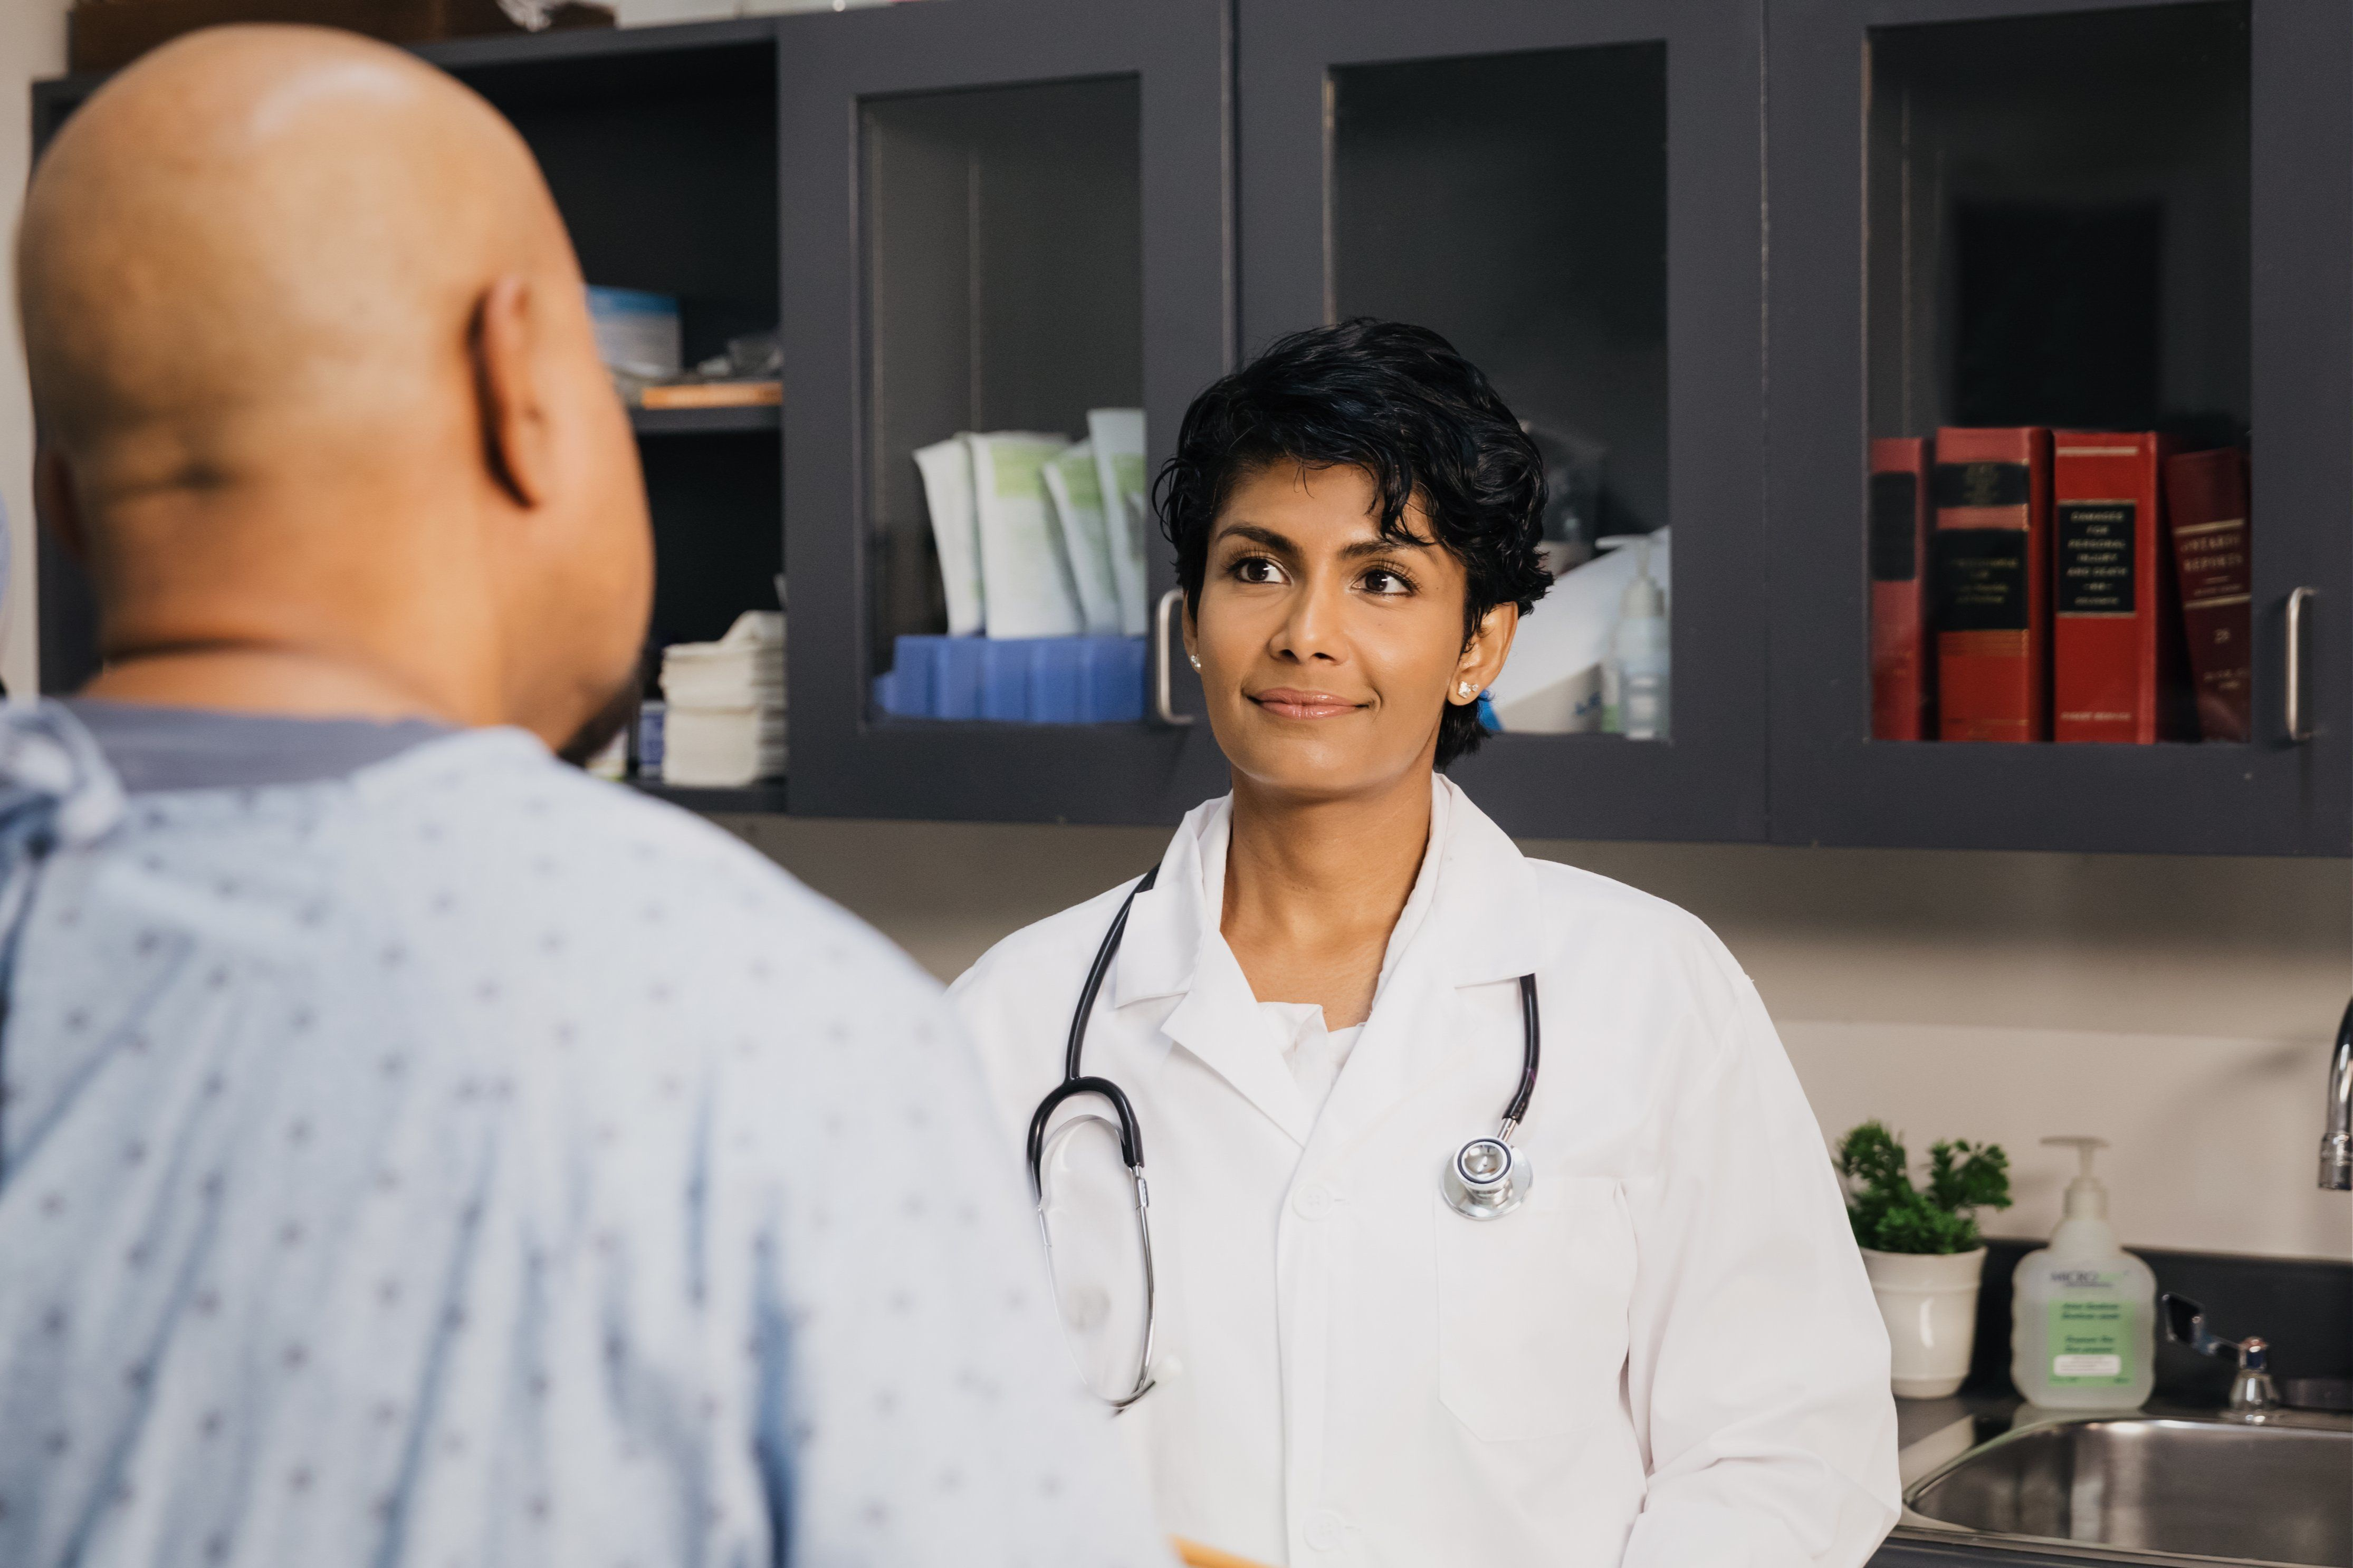 What is a yearly wellness visit with Medicare?